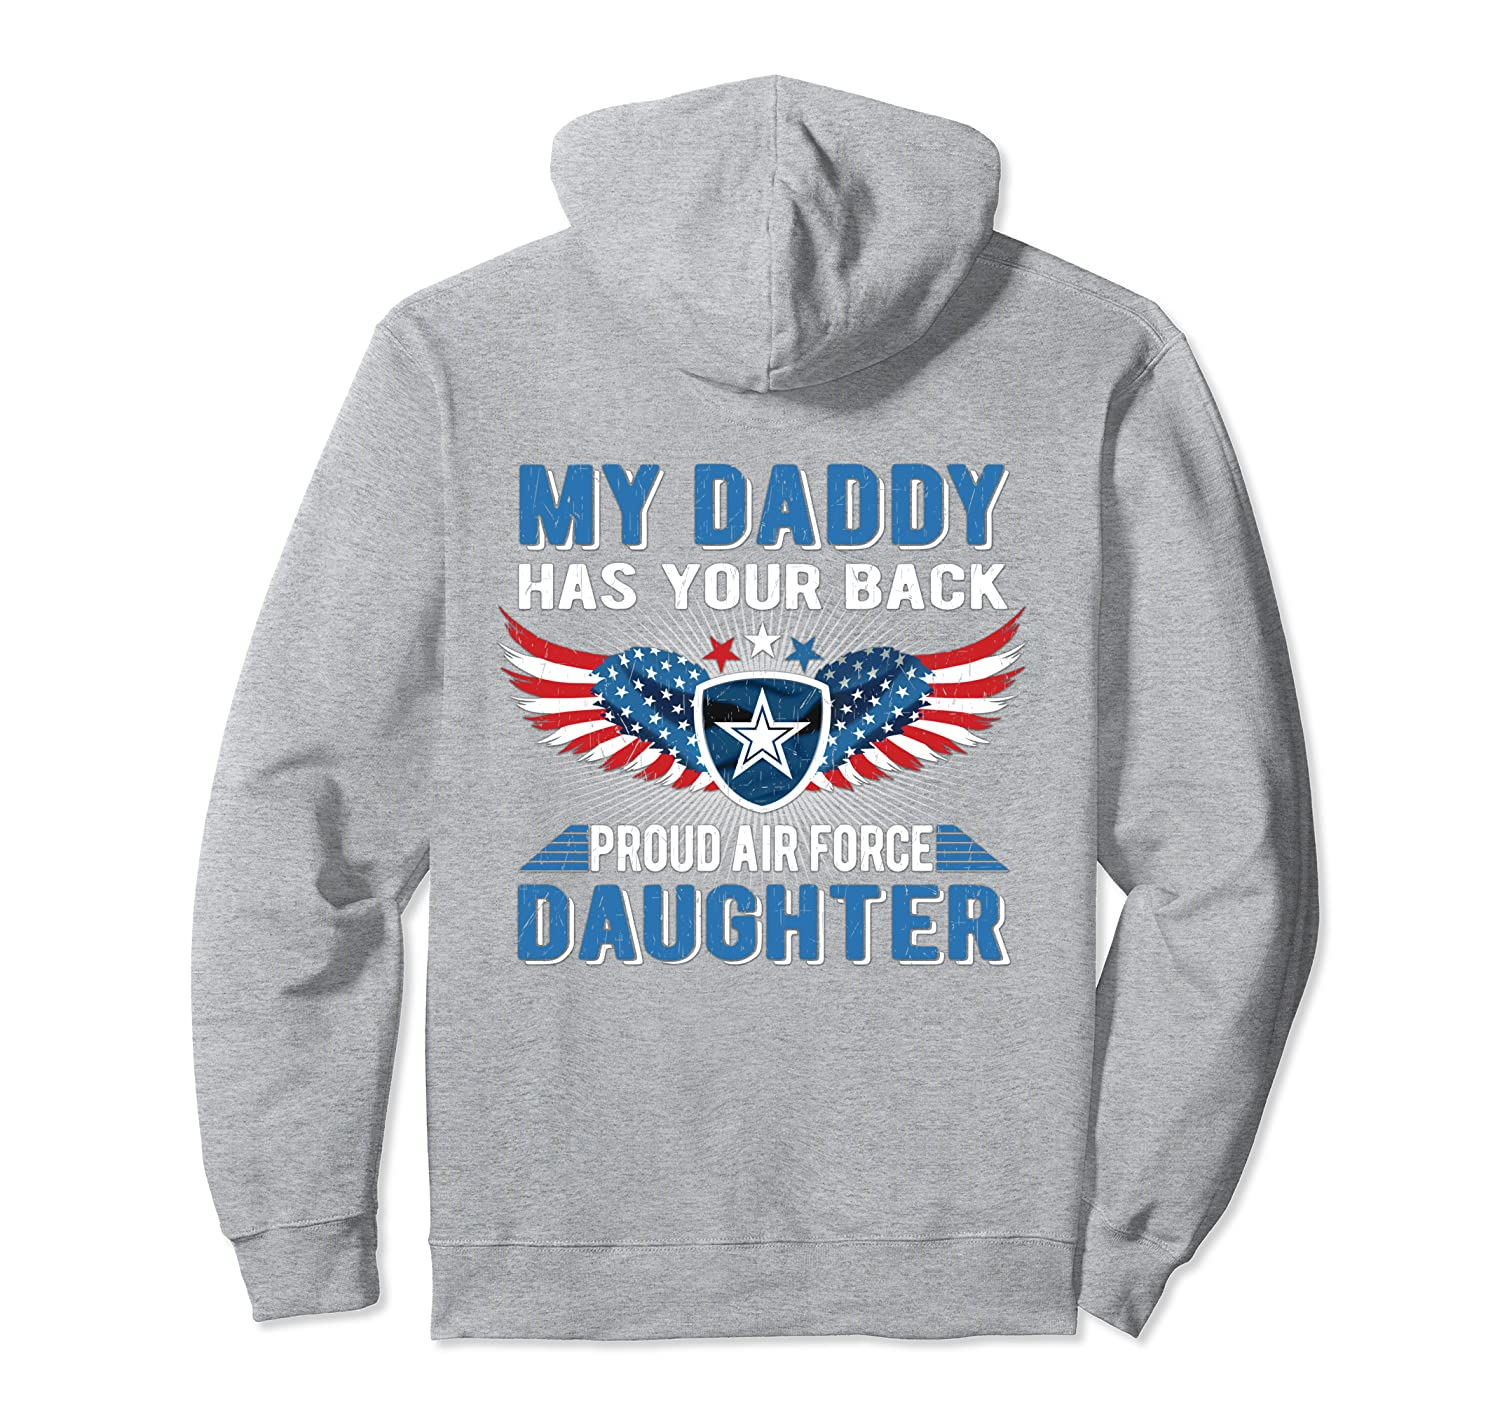 My Daddy Has Your Back Proud Air Force Daughter Military Pullover Hoodie